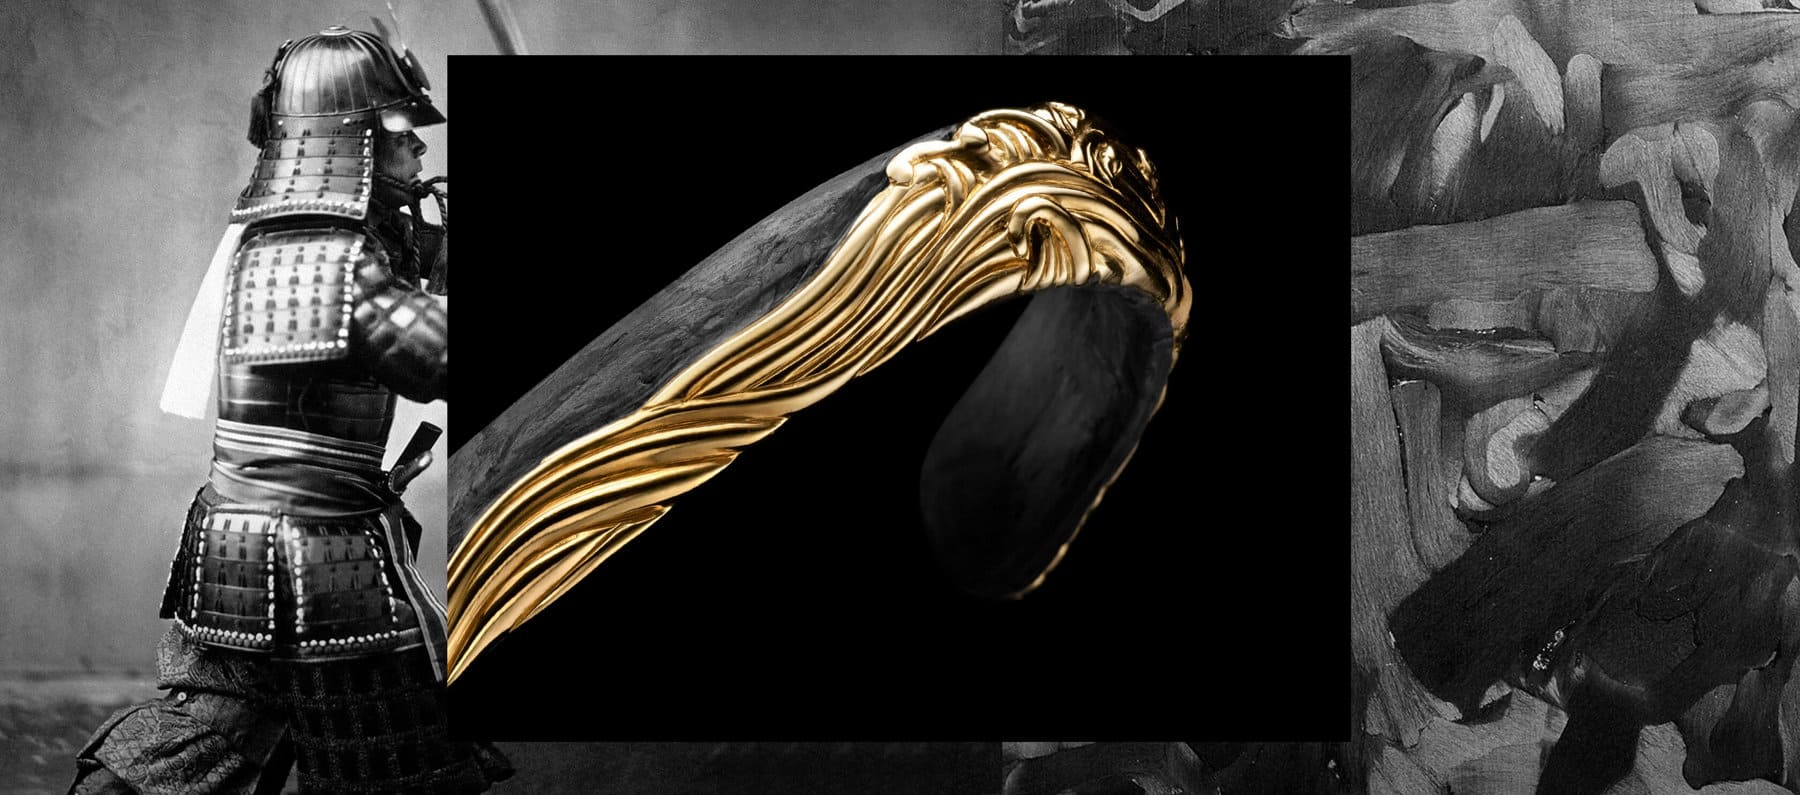 A color photo shows two David Yurman men's Waves rings balanced atop a large piece of forged carbon with another piece of forged carbon in the background behind the rings. The jewelry is crafted from sterling silver with 18K yellow gold accents that depict ocean waves and birds flying in the sky. The right on the right features black pavé diamonds.